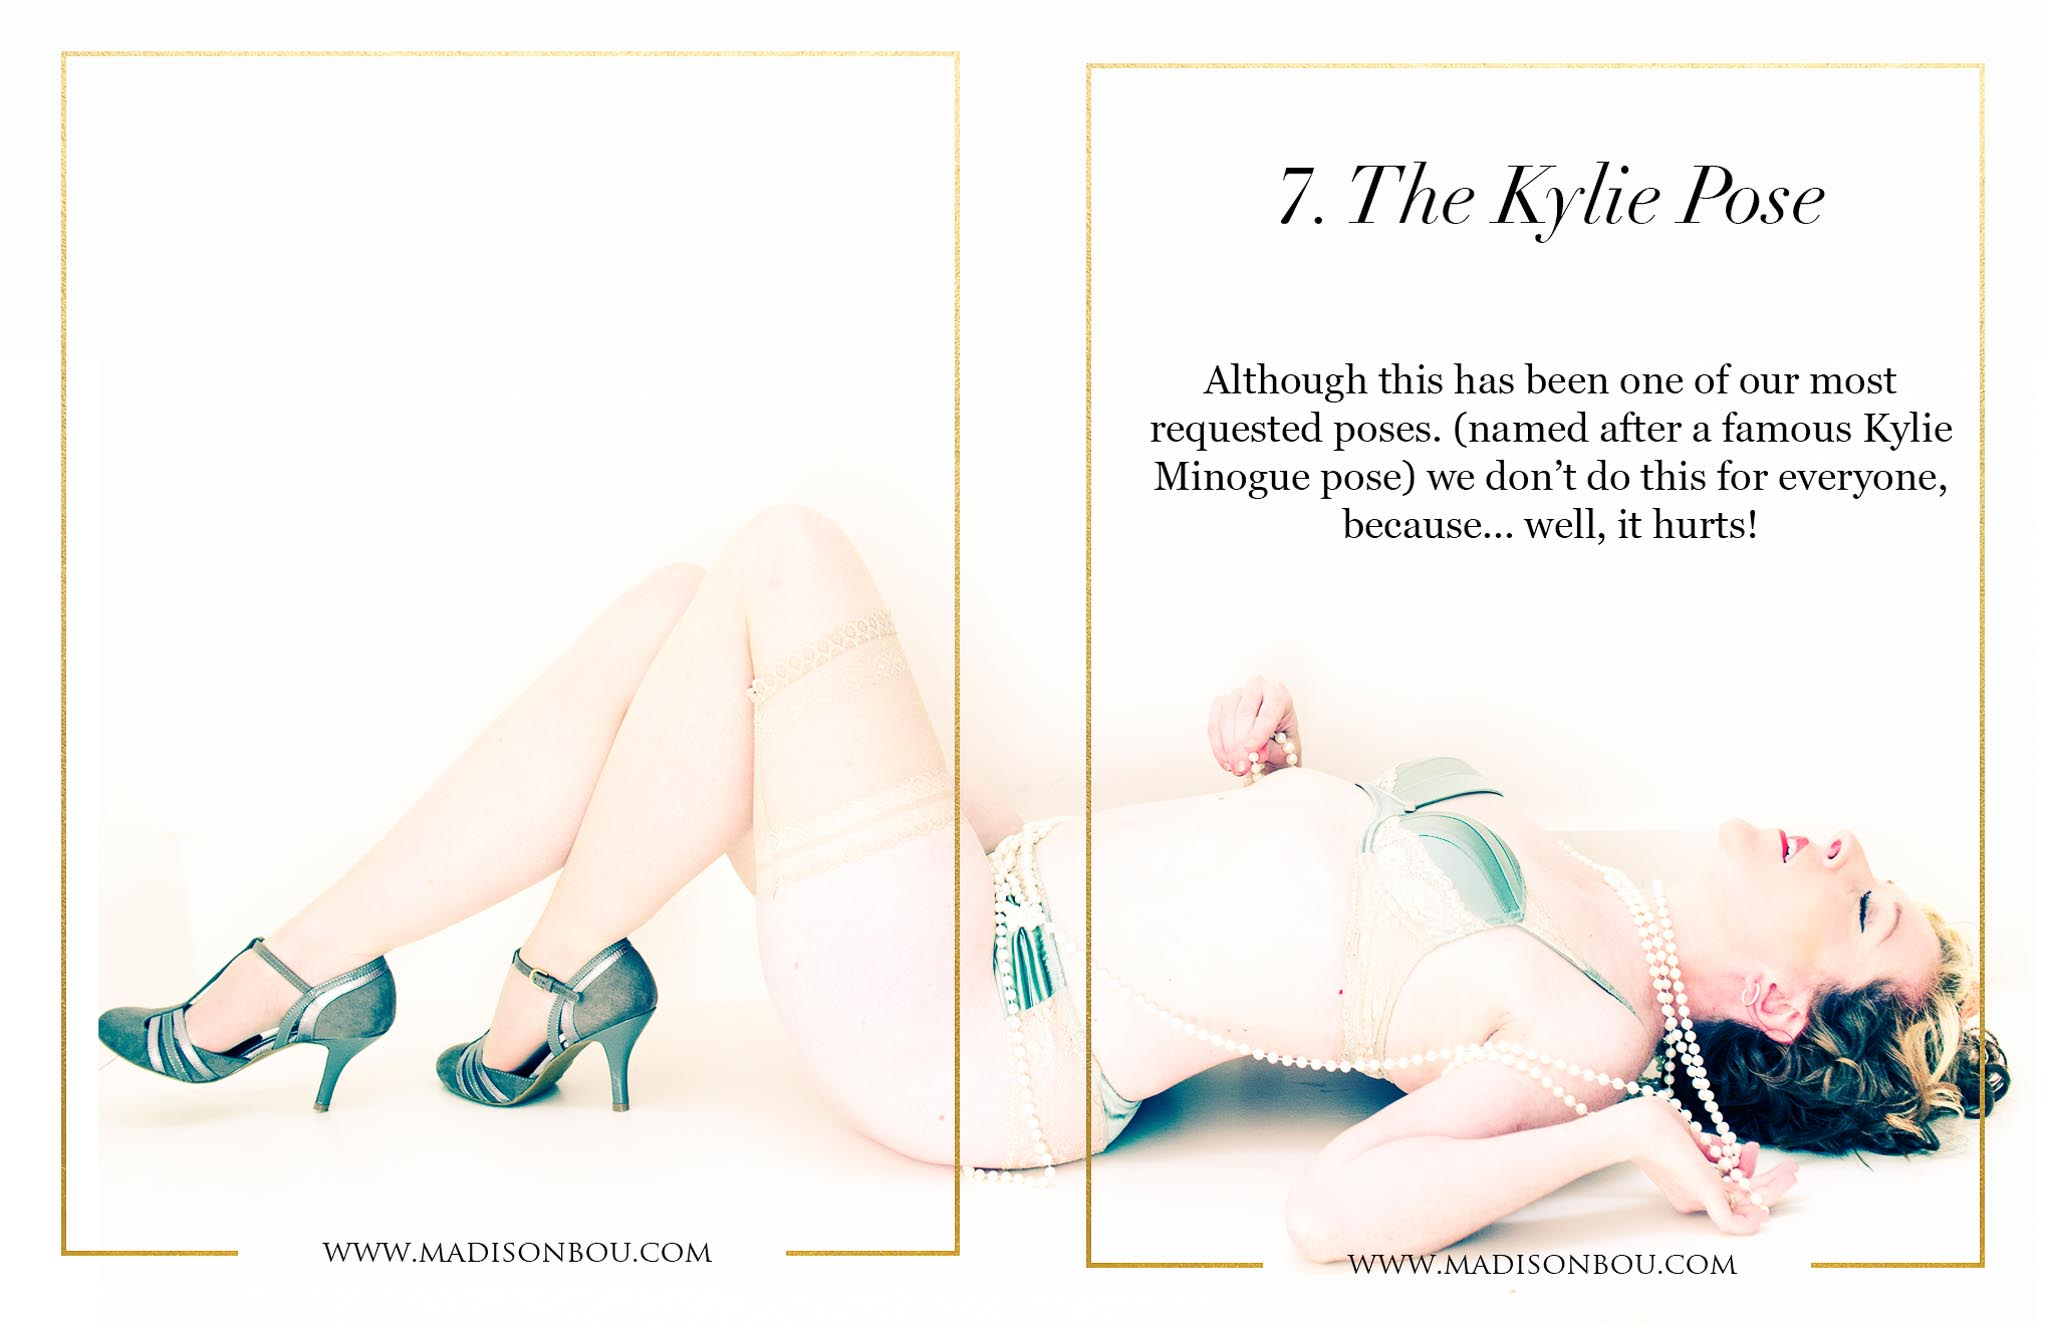 7-tHE-kYLIE-pOSE-top 10 boudoir poses